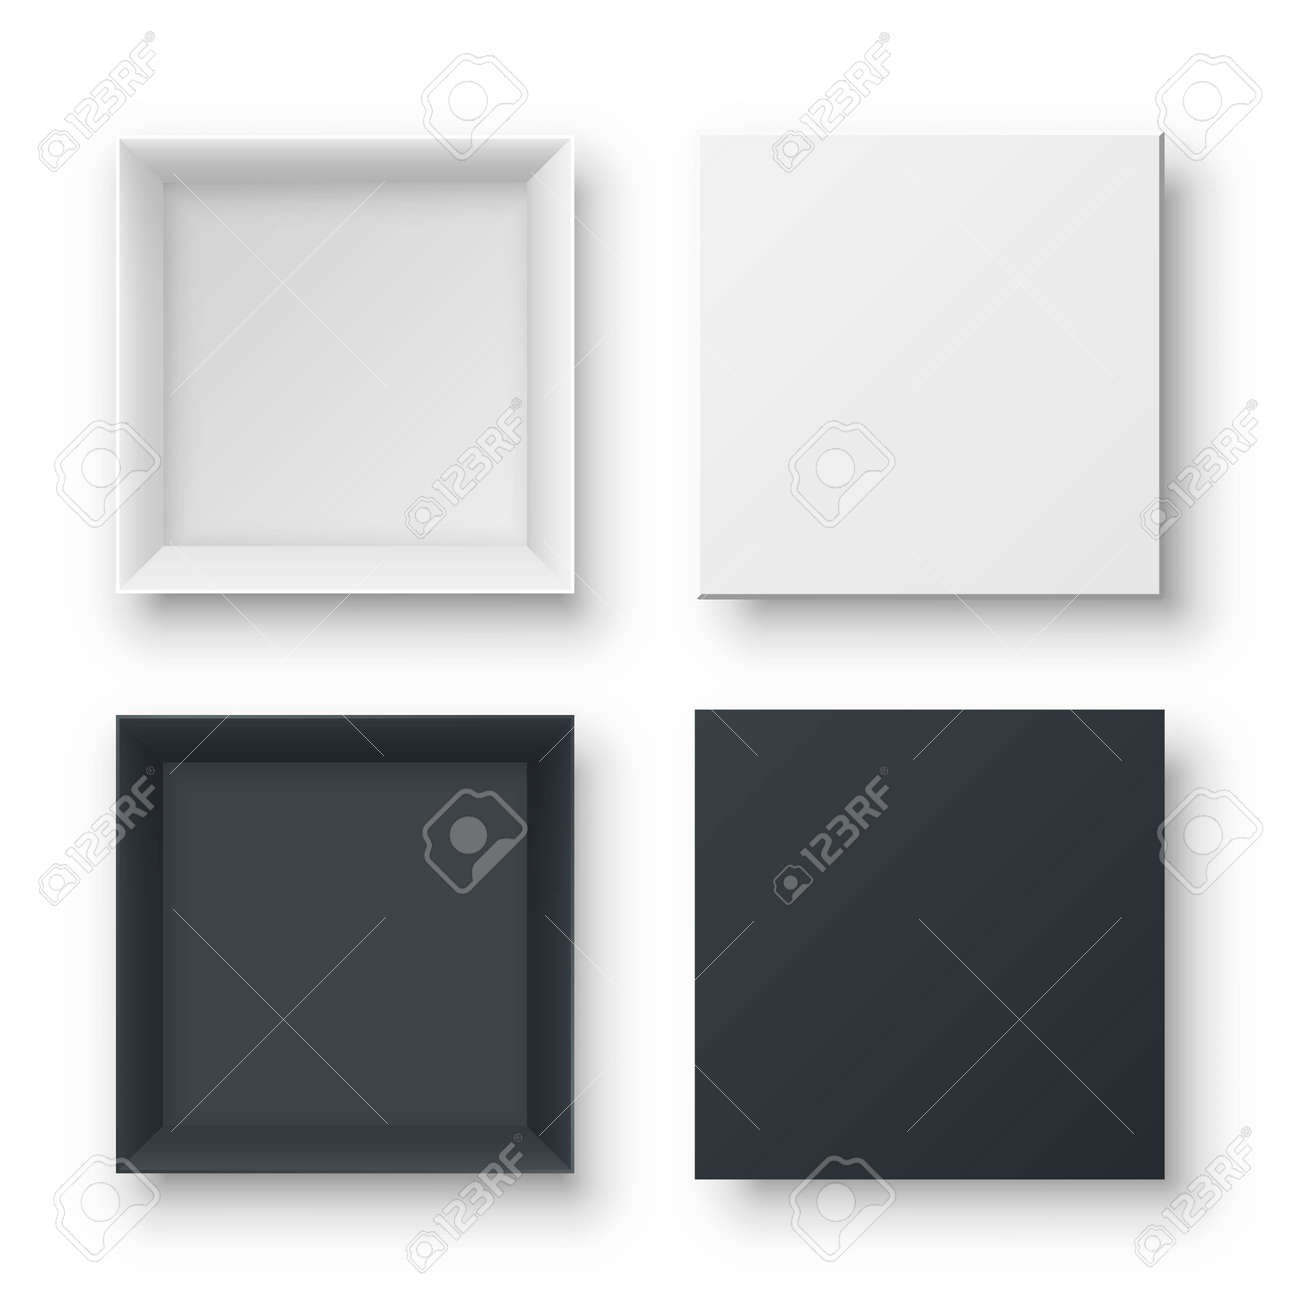 Realistic open empty gift boxes two view. Paper square cardboard white and black container mockups. Blank package models for wrapped product, present, surprise delivery. Objects isolated on white. - 163397484